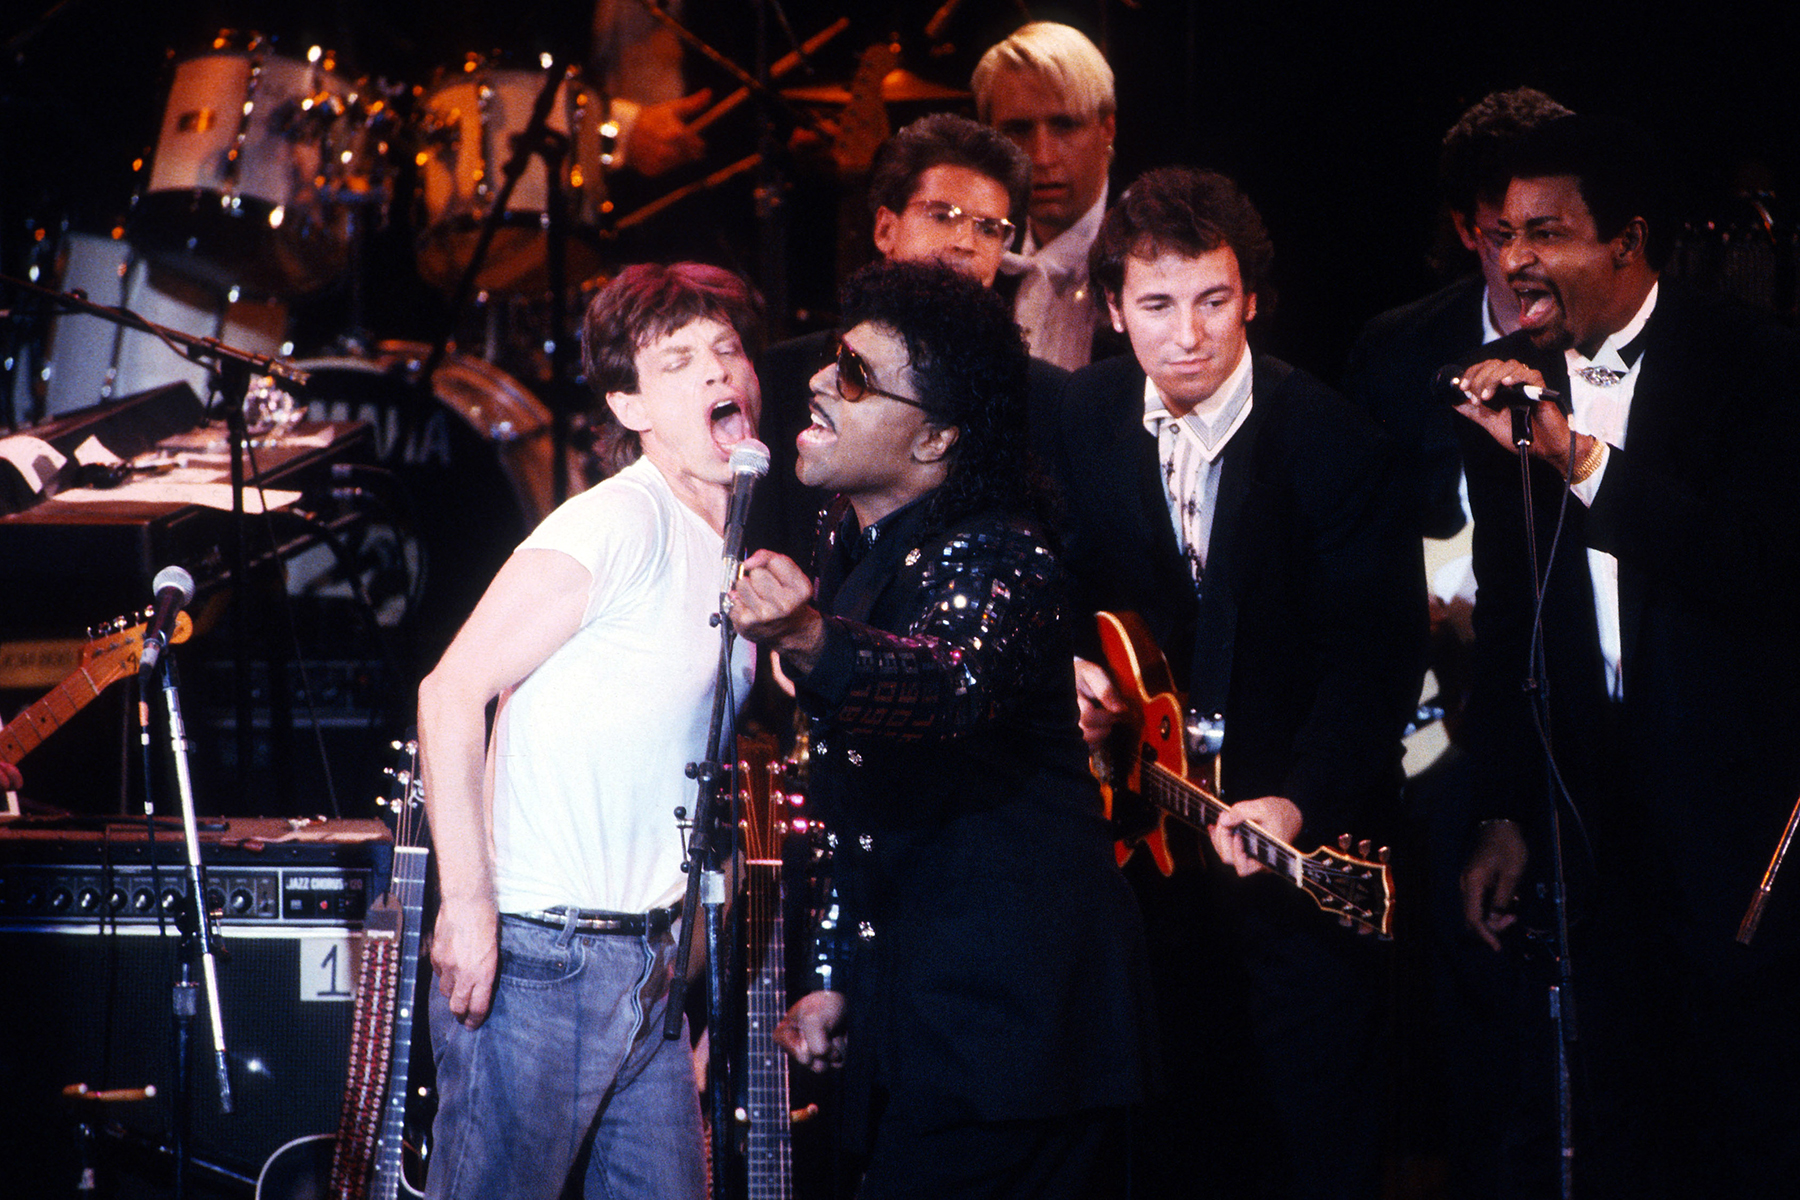 1989 Rock and Roll Hall of Fame at the Waldorf Astoria New York Mick Jagger and Little Richard with the TemptationsRock and Roll Hall of Fame - 19 Nov 1989